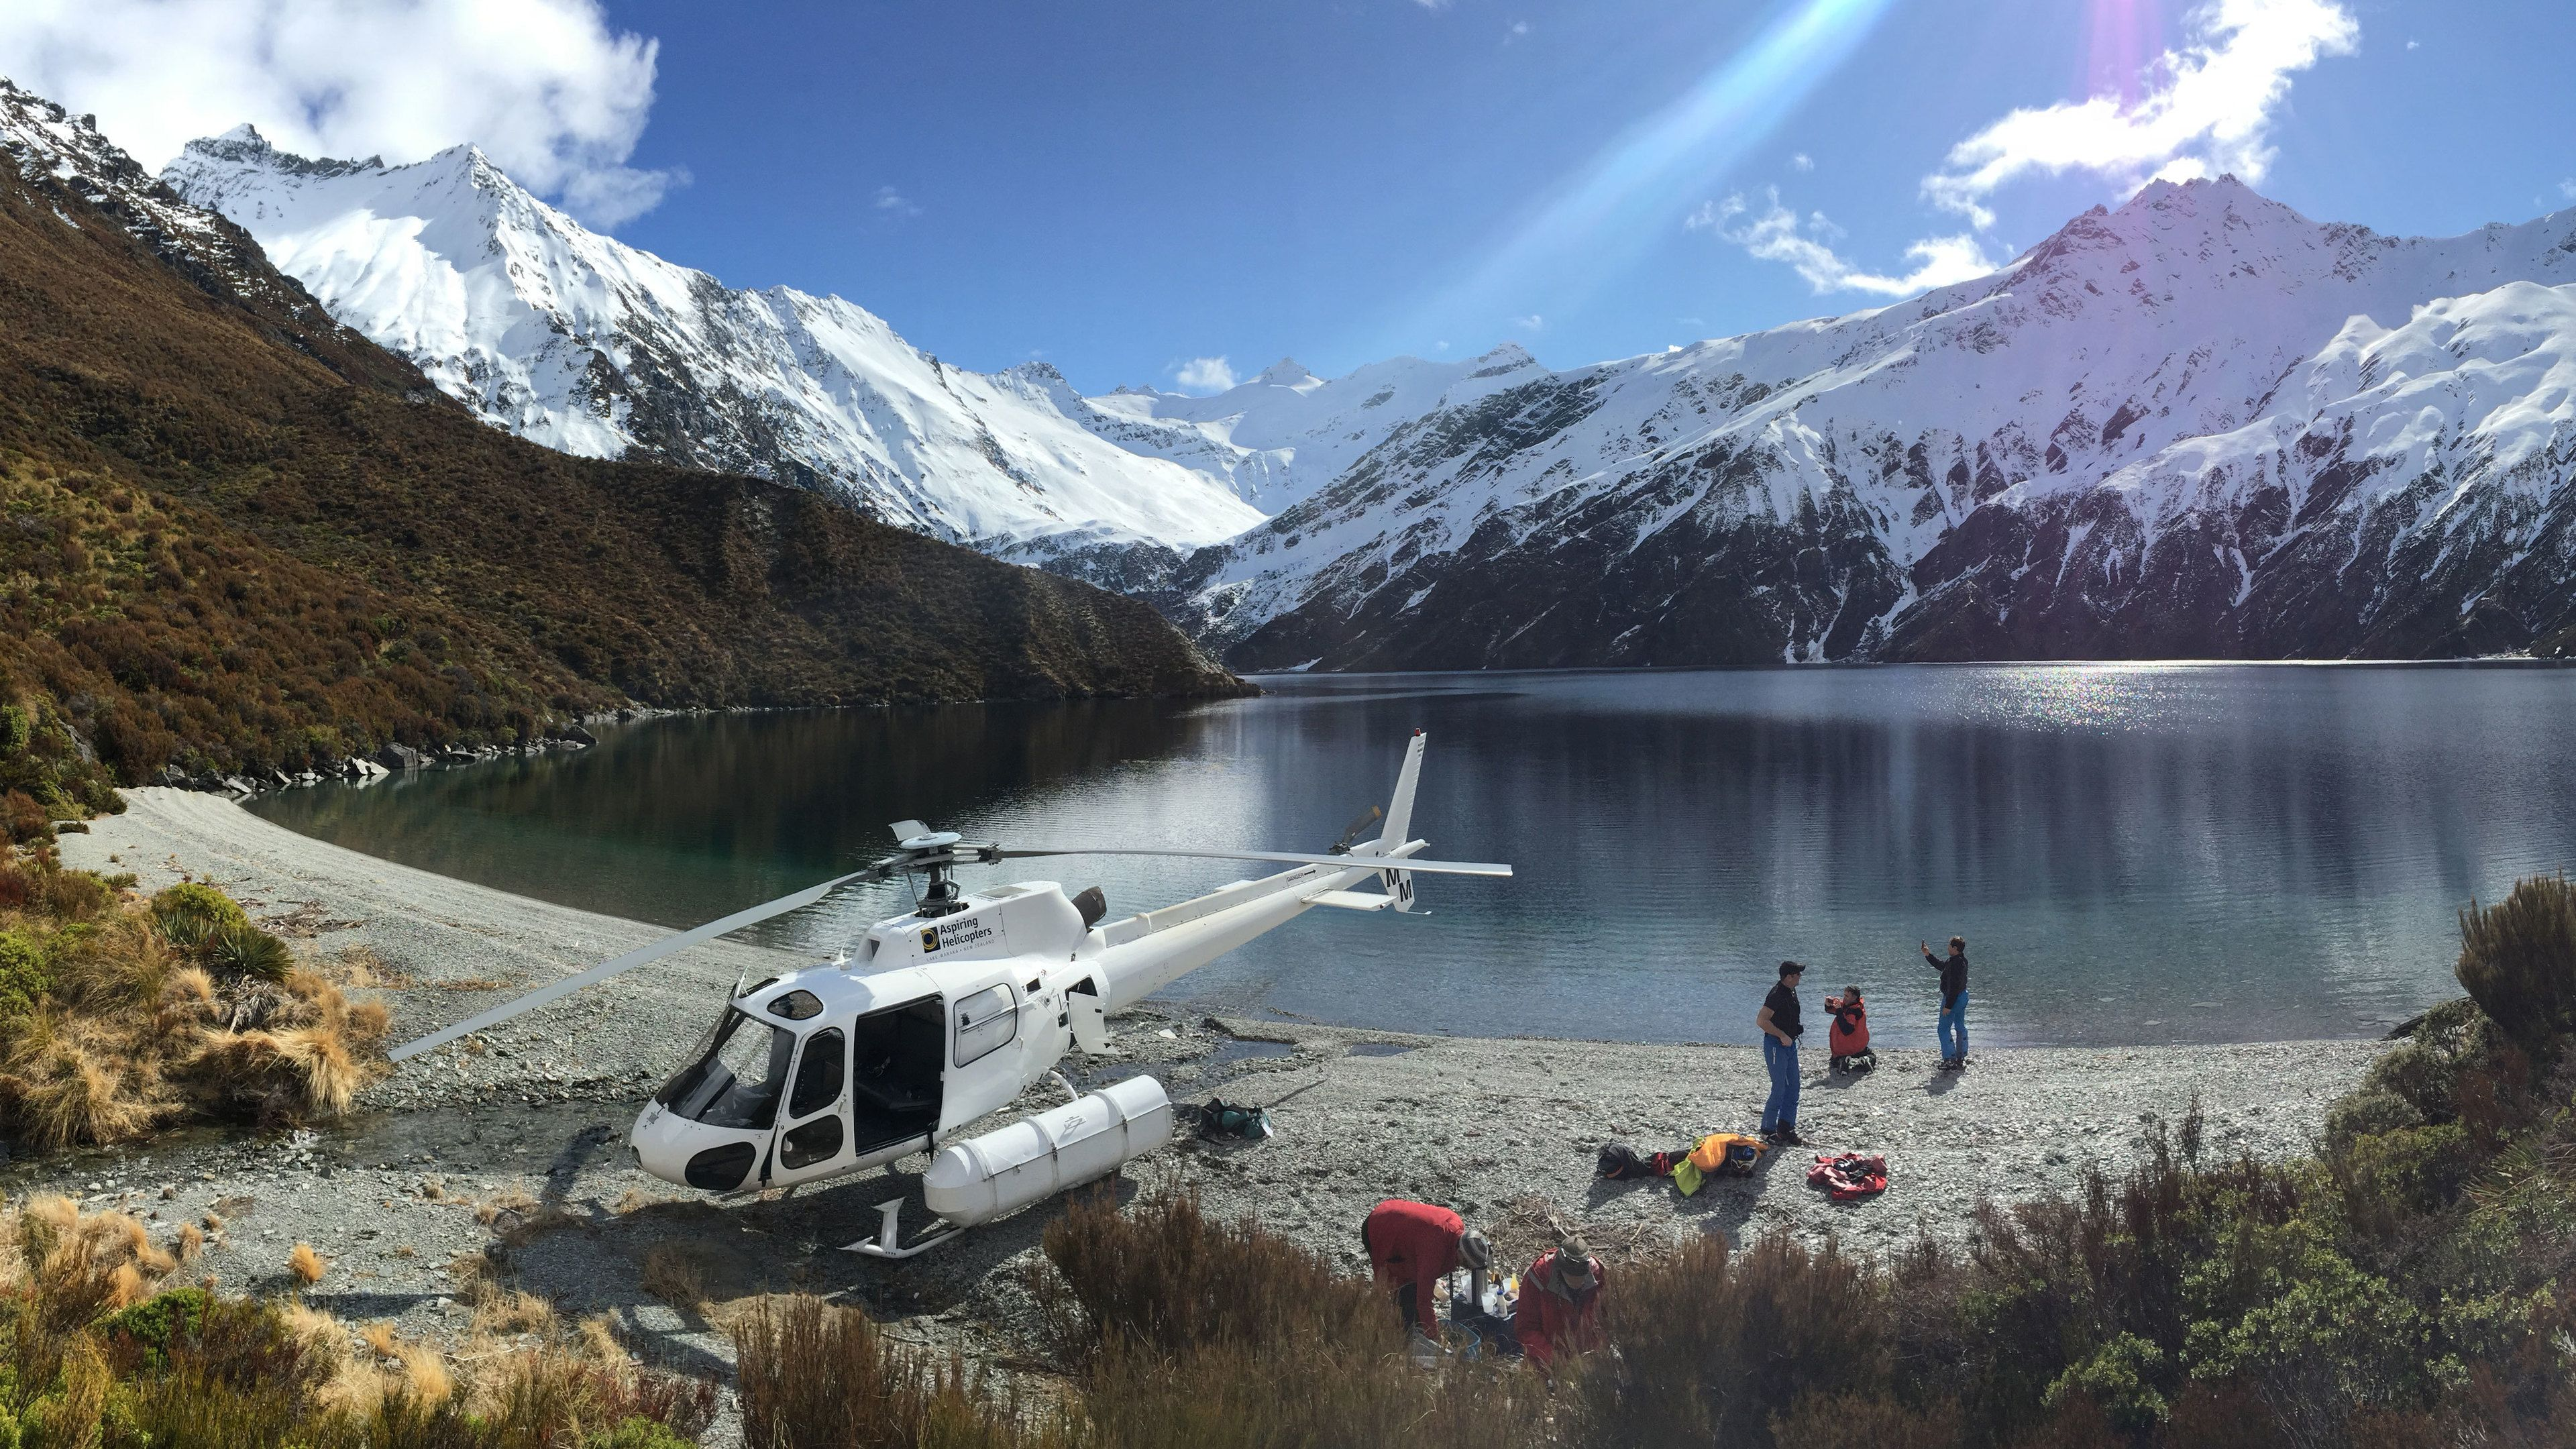 Helicopter next to a lake on a mountain top